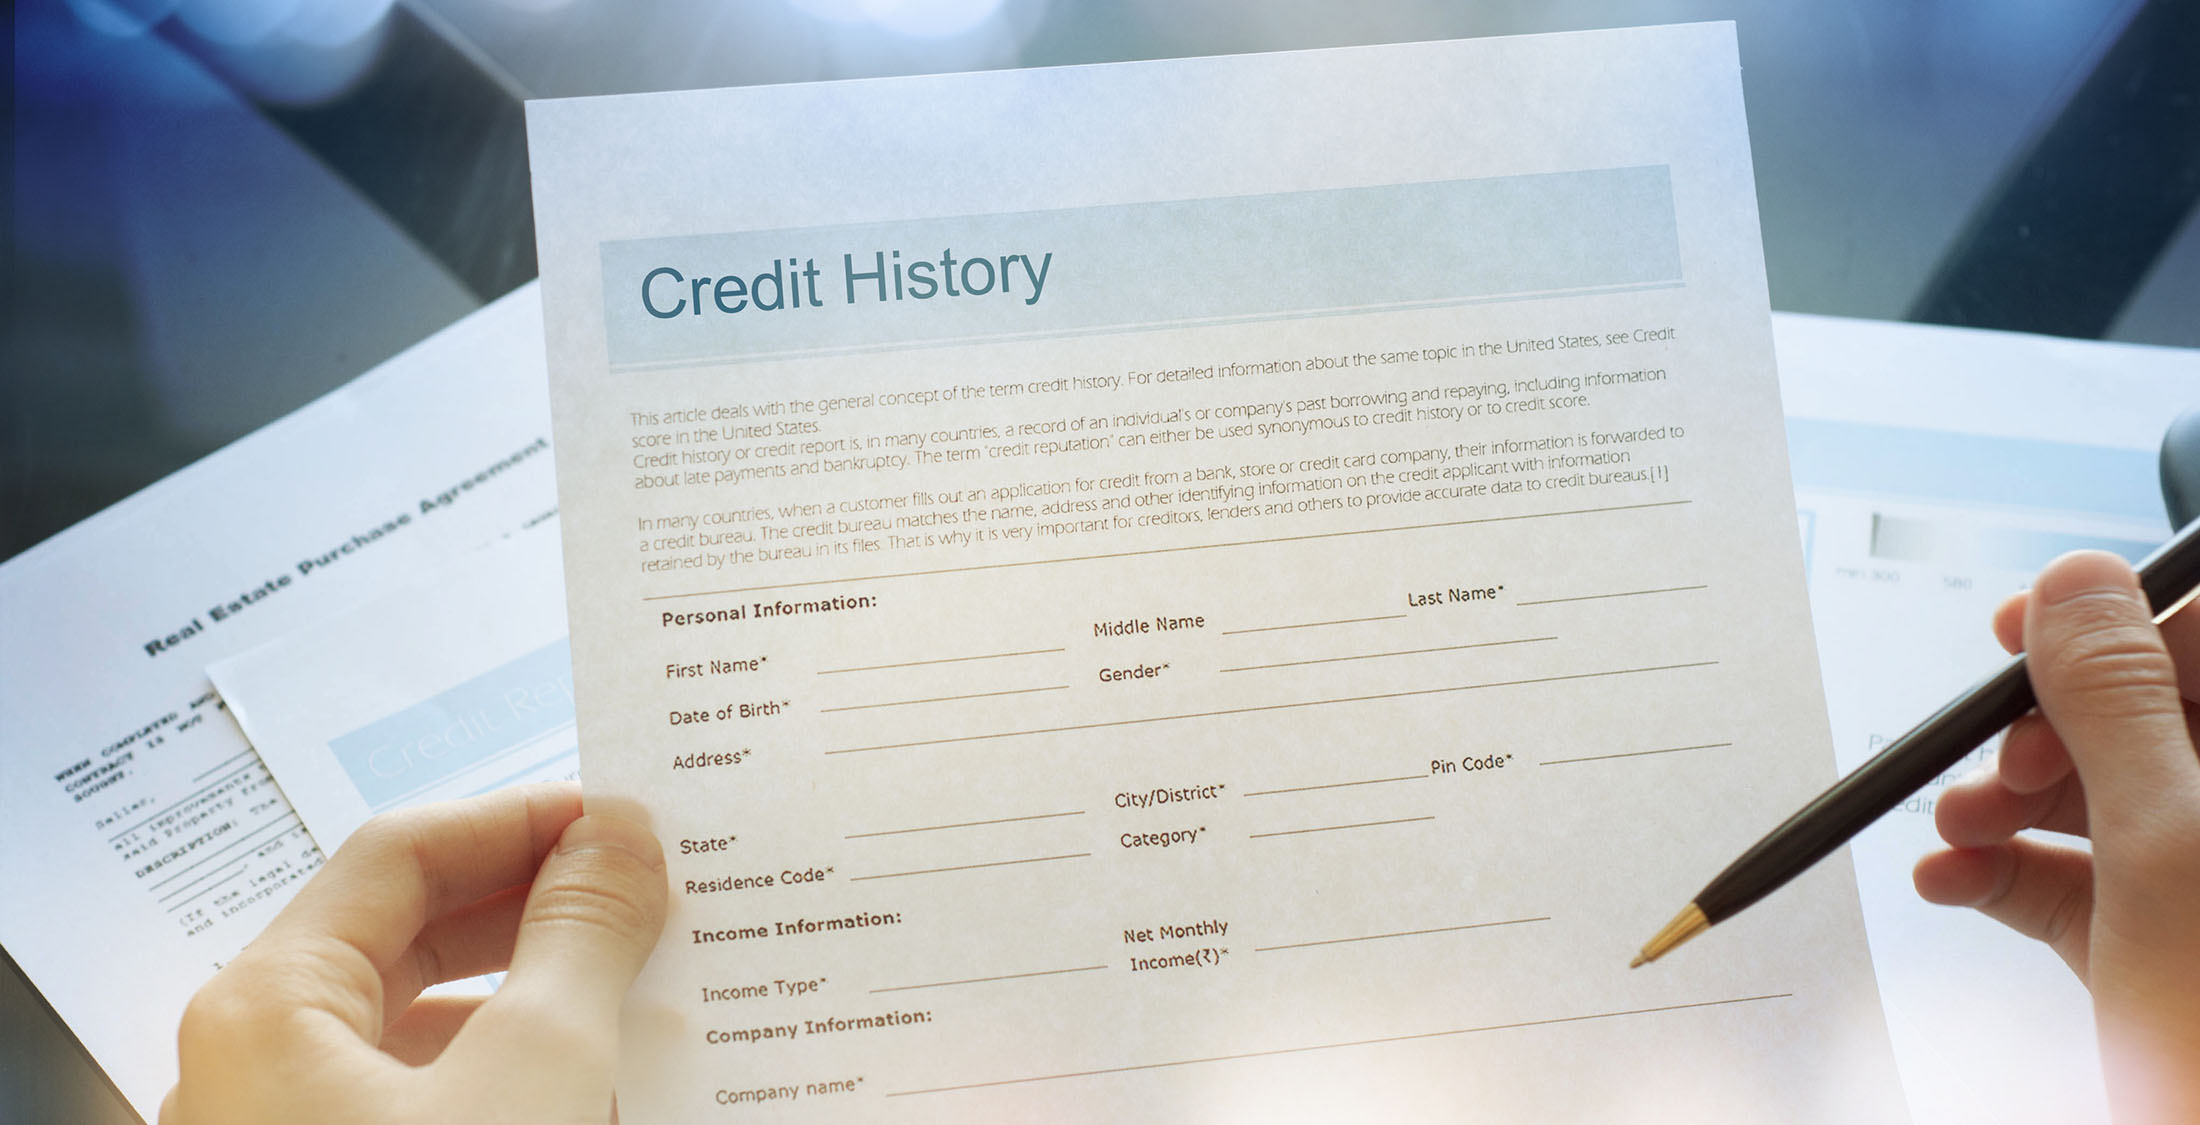 7 Preapproved Credit Card Facts You Need to Know Before